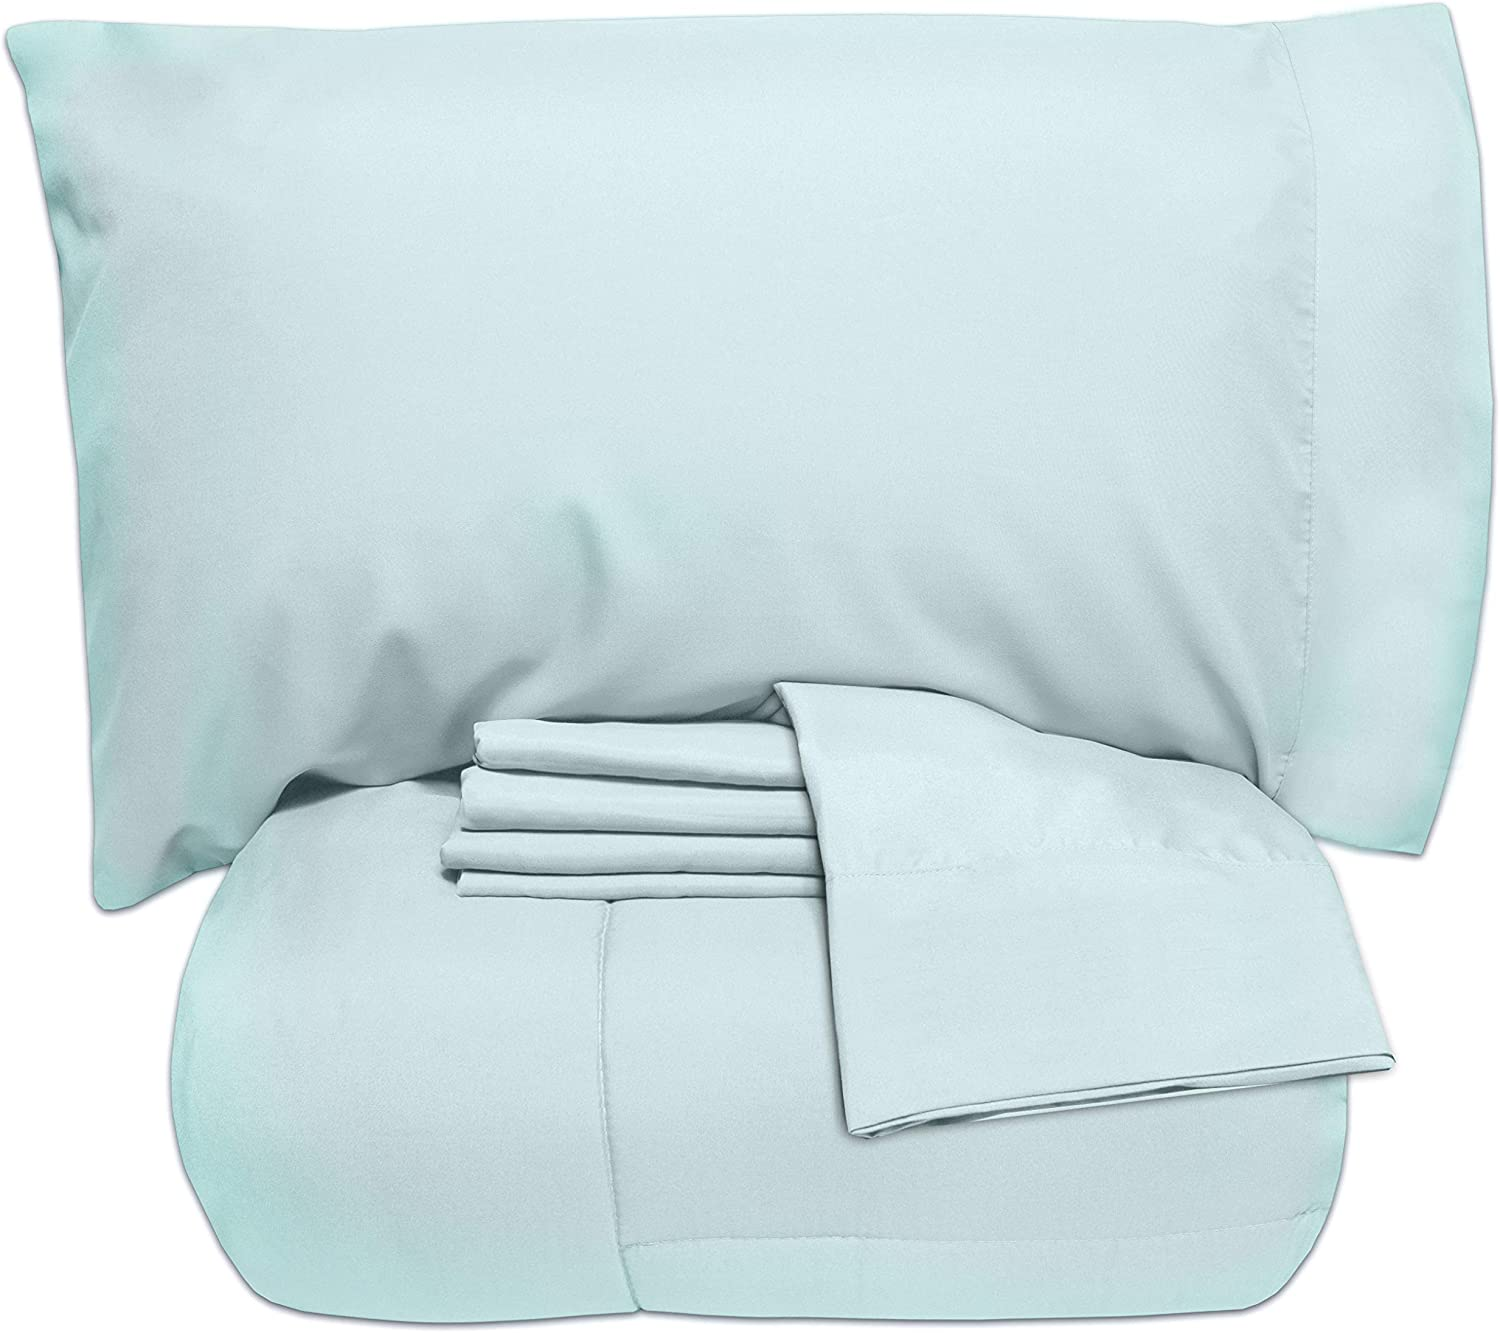 Sweet Home Collection 5 Piece Bag Comforter Set Solid Color All Season Soft Down Alternative Blanket & Luxurious Microfiber Bed Sheets, Twin, Aqua, 7